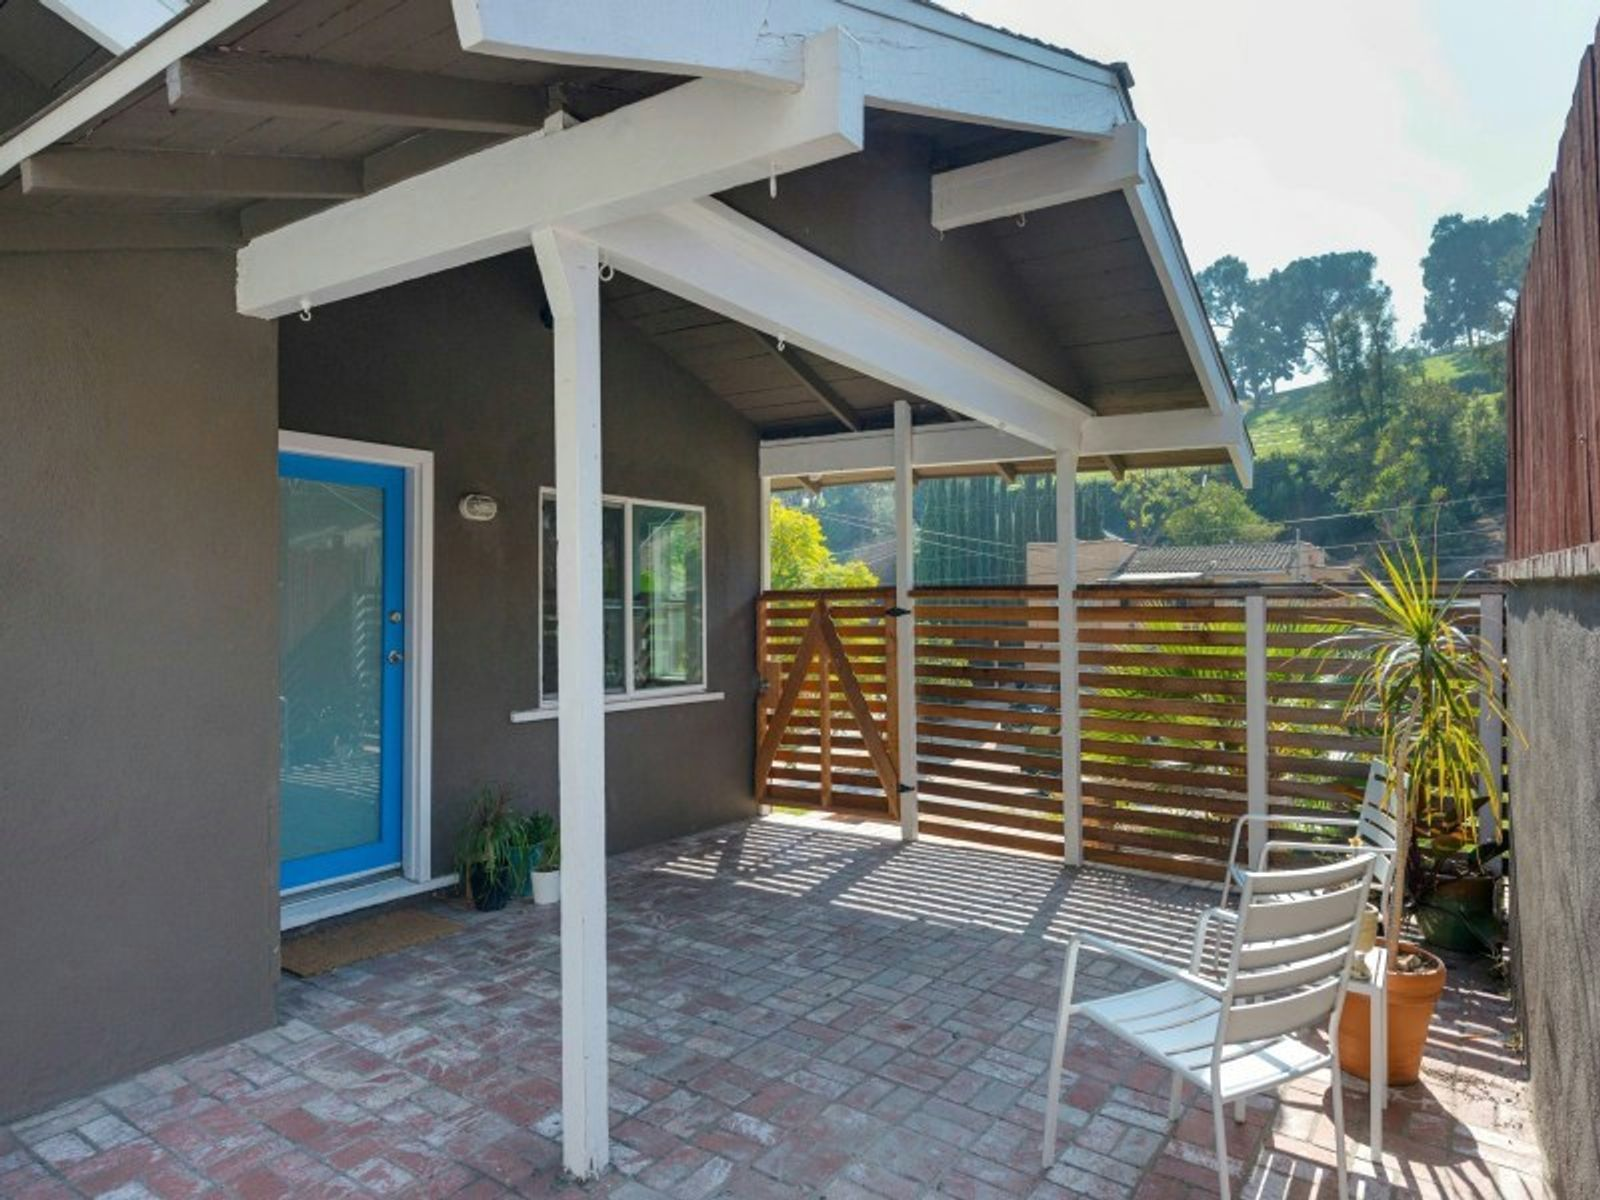 3711 York Boulevard, Los Angeles CA Single Family Home - Los Angeles Real Estate